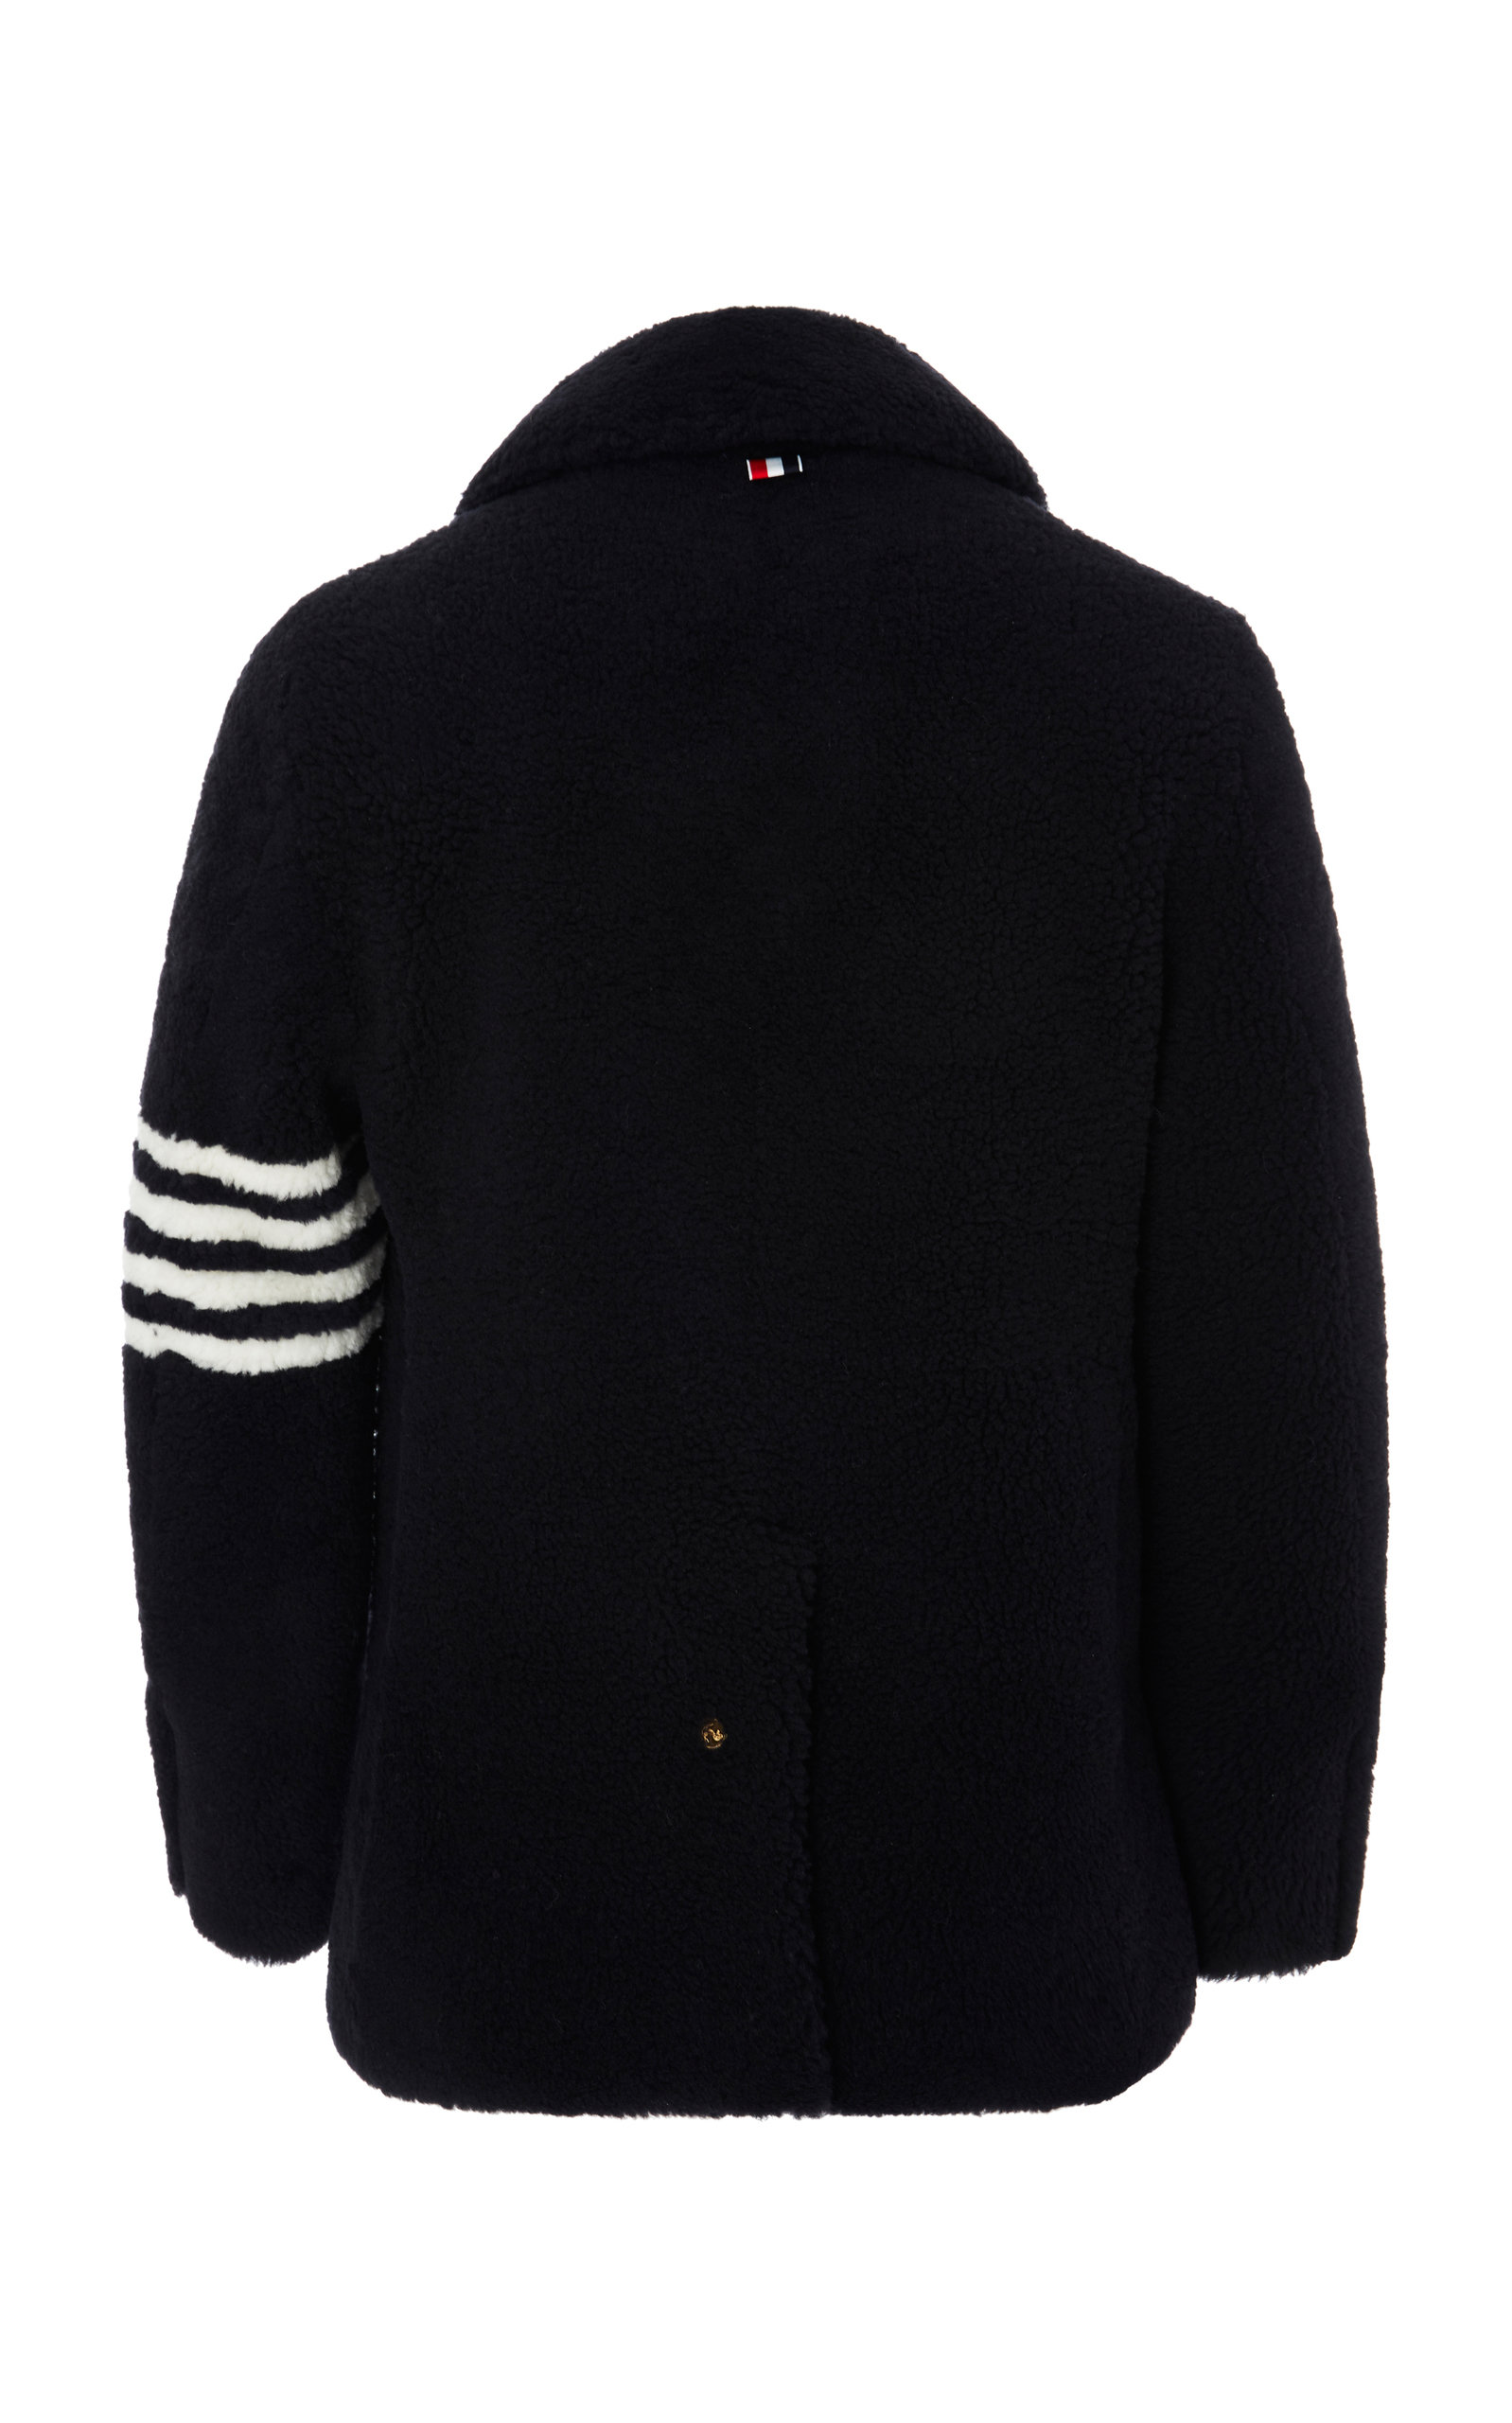 81e0931ecf Thom BrowneDouble-Breasted Striped Shearling Peacoat. CLOSE. Loading.  Loading